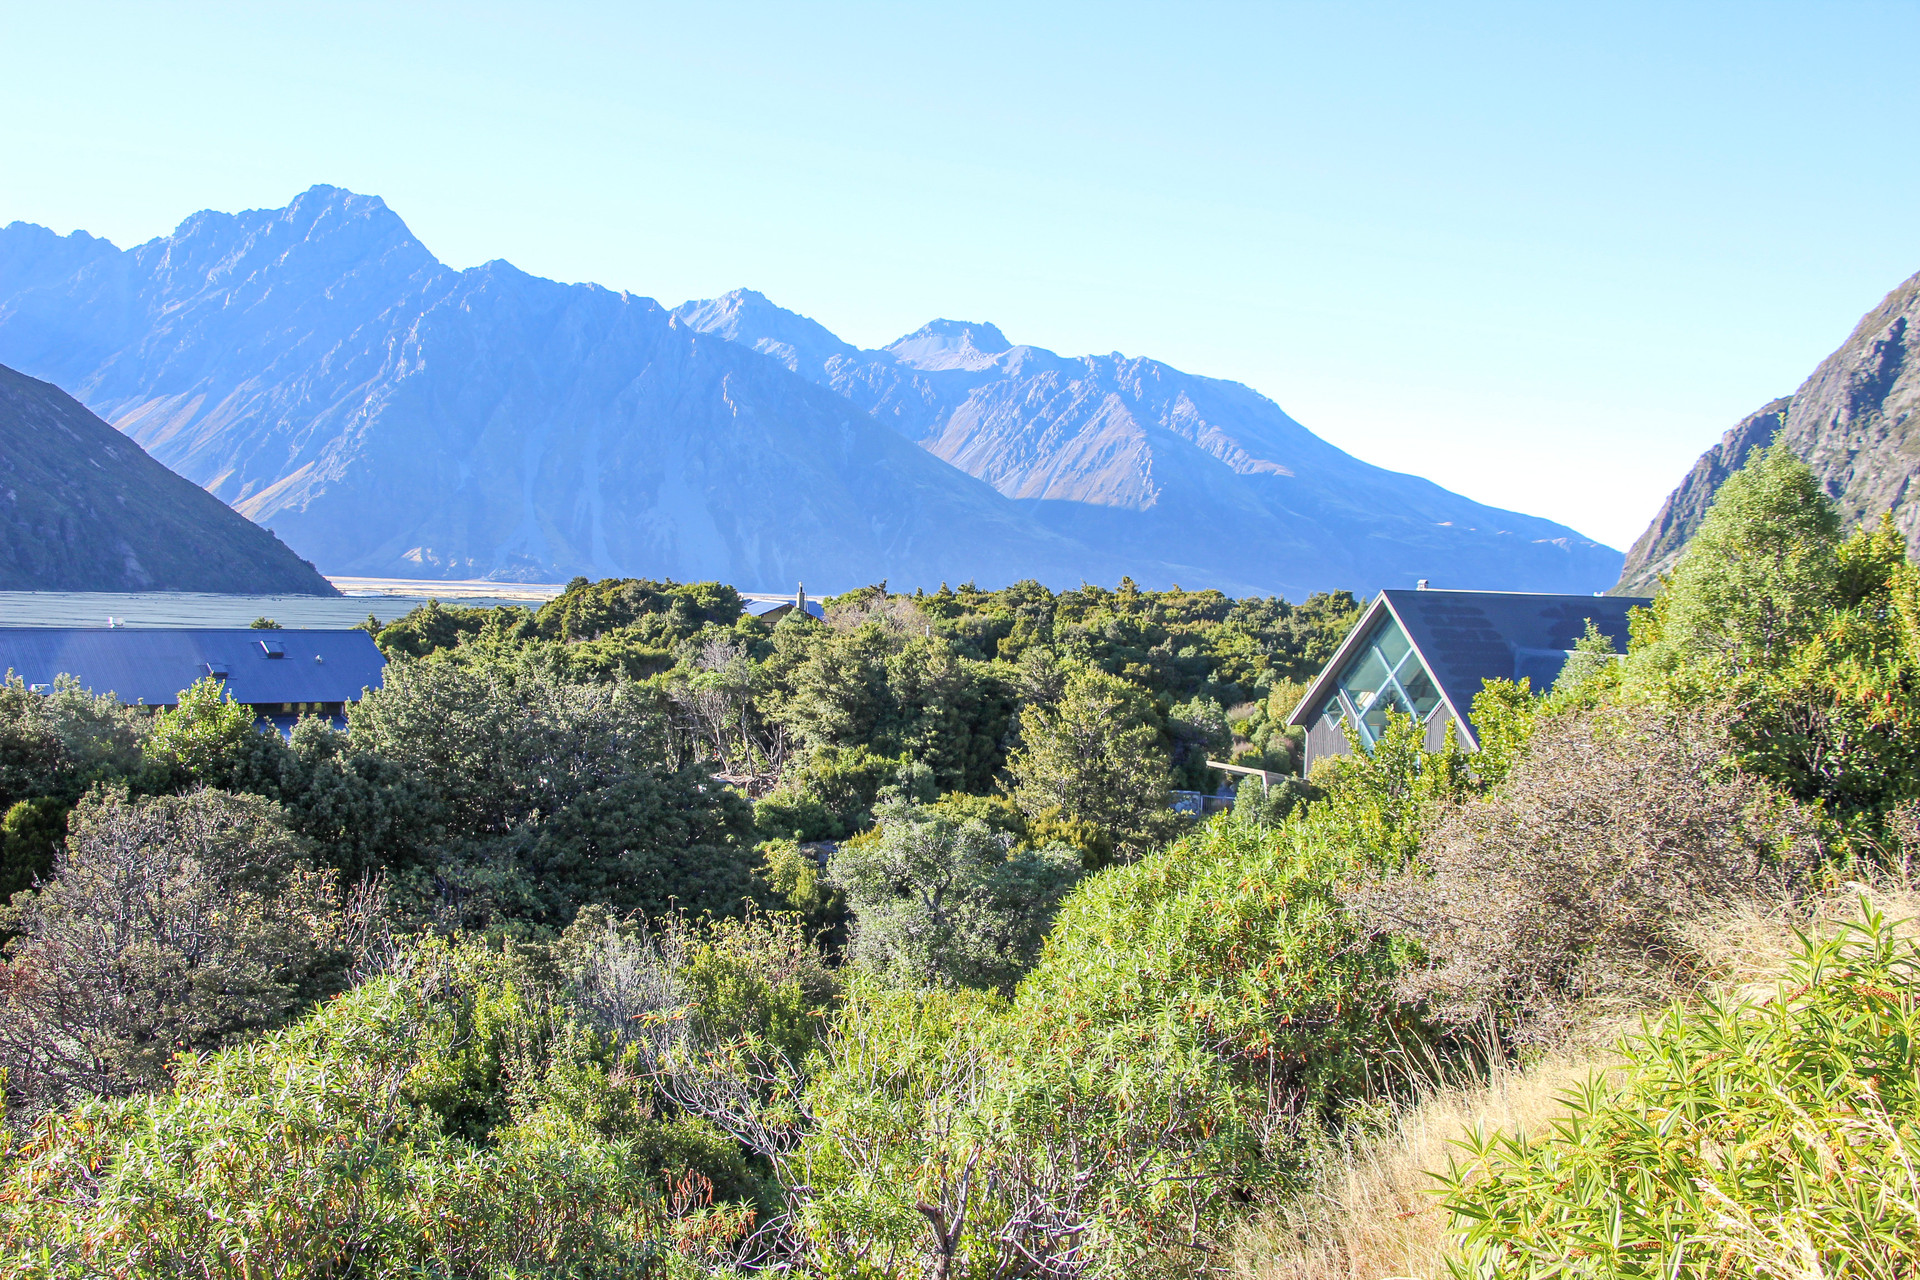 mt cook village building in surrounded by planted landscape and mountains